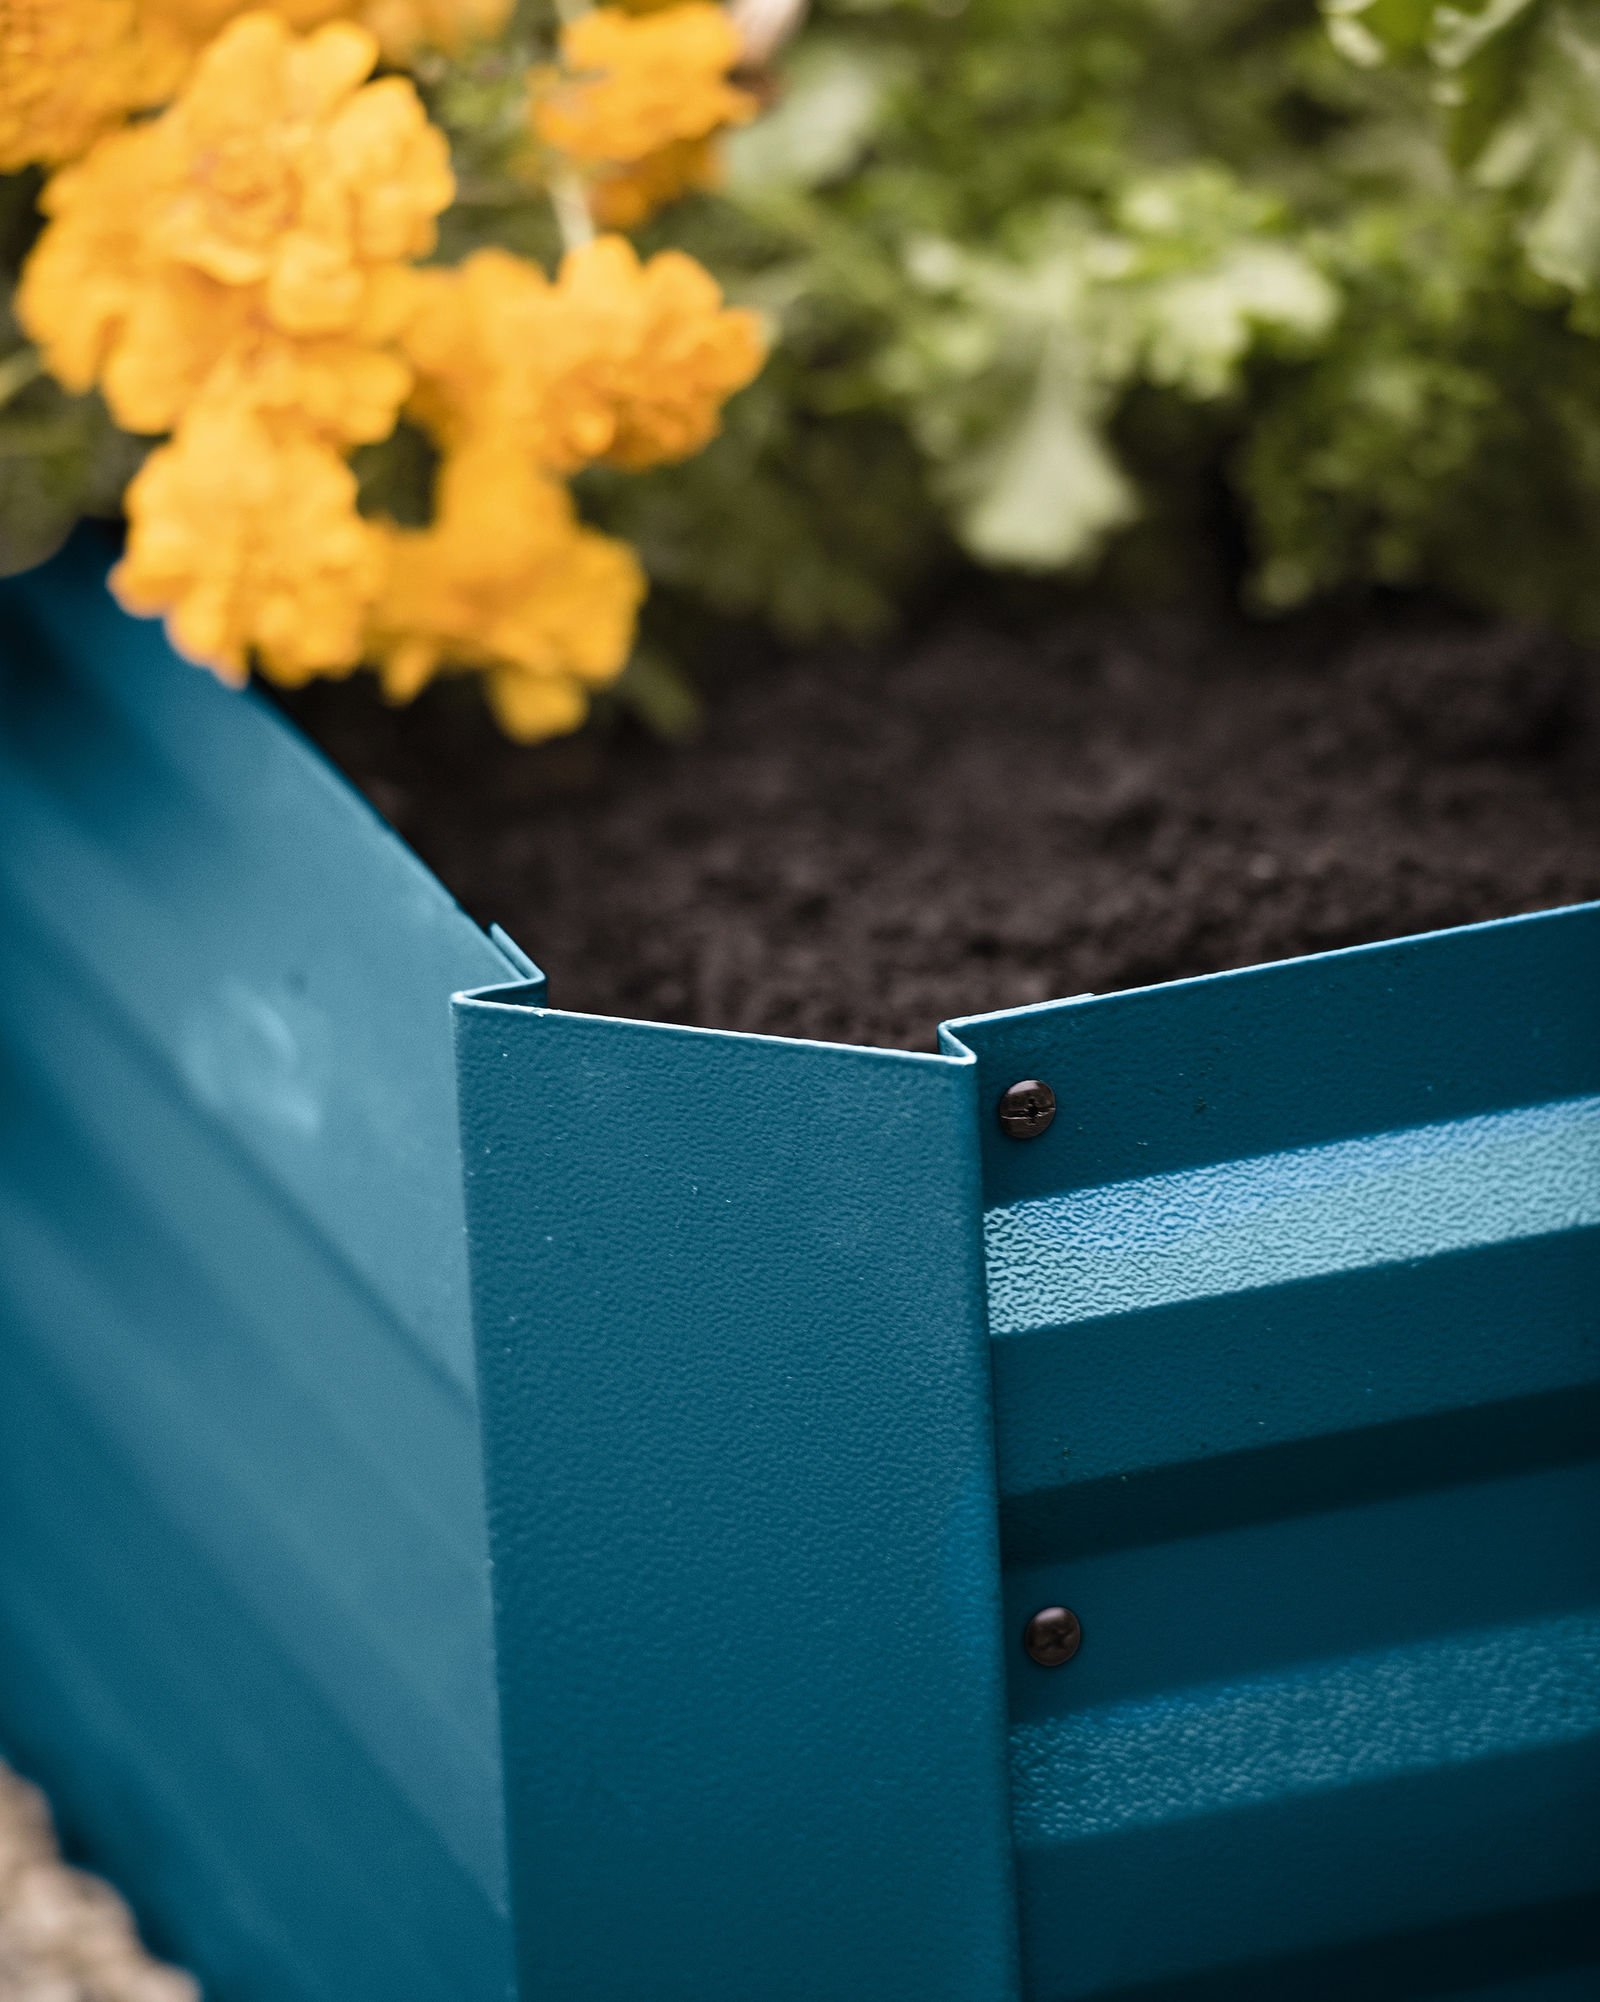 """Gardener's Supply Company Corrugated Metal Powder-Coated Steel Raised Bed, 34"""" x 68"""" Blue 2 STYLISH and STURDY- Richly hued raised bed made from sturdy yet lightweight powder-coated steel complements your landscape and showcases plants. BENEFITS- Extra deep to accommodate large plants. Lightly textured surface. Raised beds are easier to plant and tend than in-ground beds, with fewer pests and weeds. MATERIALS and MEASUREMENTS- Powder-coated steel - 68"""" L x 35-1/4"""" W x 11-3/4"""" H - Holds 17 cu. ft. of soil"""